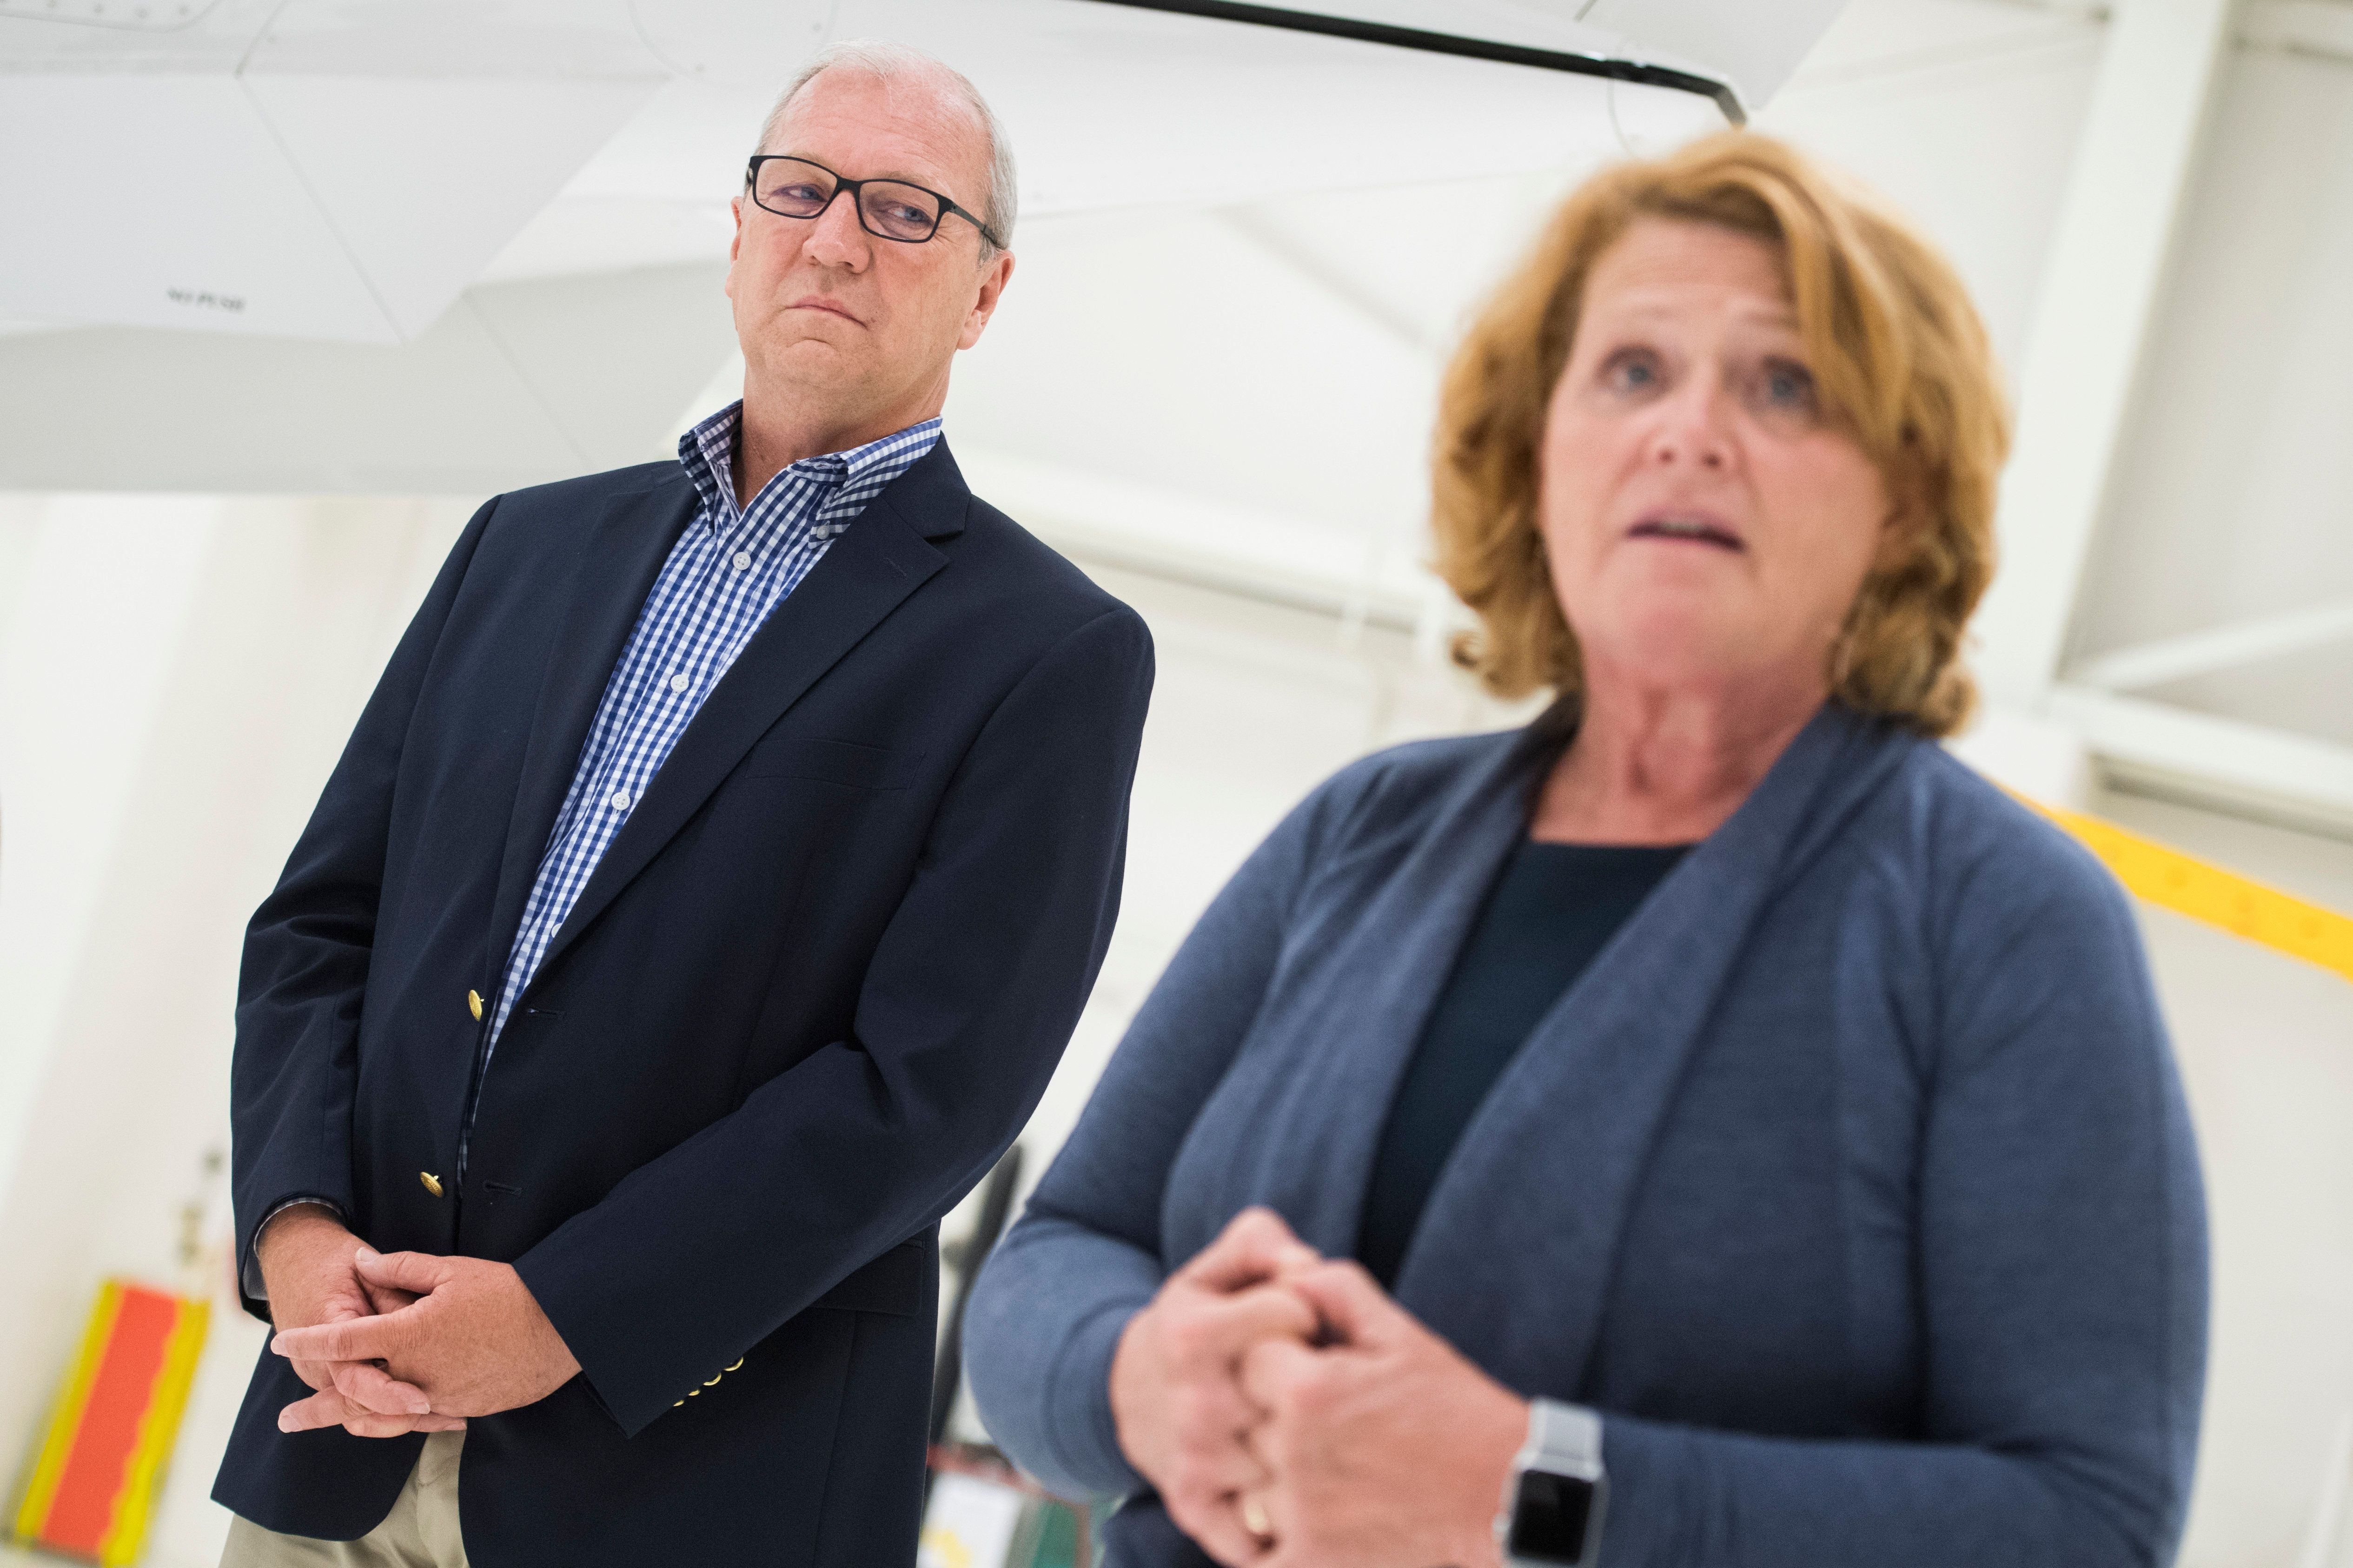 UNITED STATES - AUGUST 17: Sen. Heidi Heitkamp, D-N.D., and Rep. Kevin Cramer, R-N.D., attend an event with National Guardsmen in Bismarck, N.D., on August 17, 2018, before some troops were deployed to Africa. They are running against each other for the North Dakota Senate seat. (Photo By Tom Williams/CQ Roll Call)